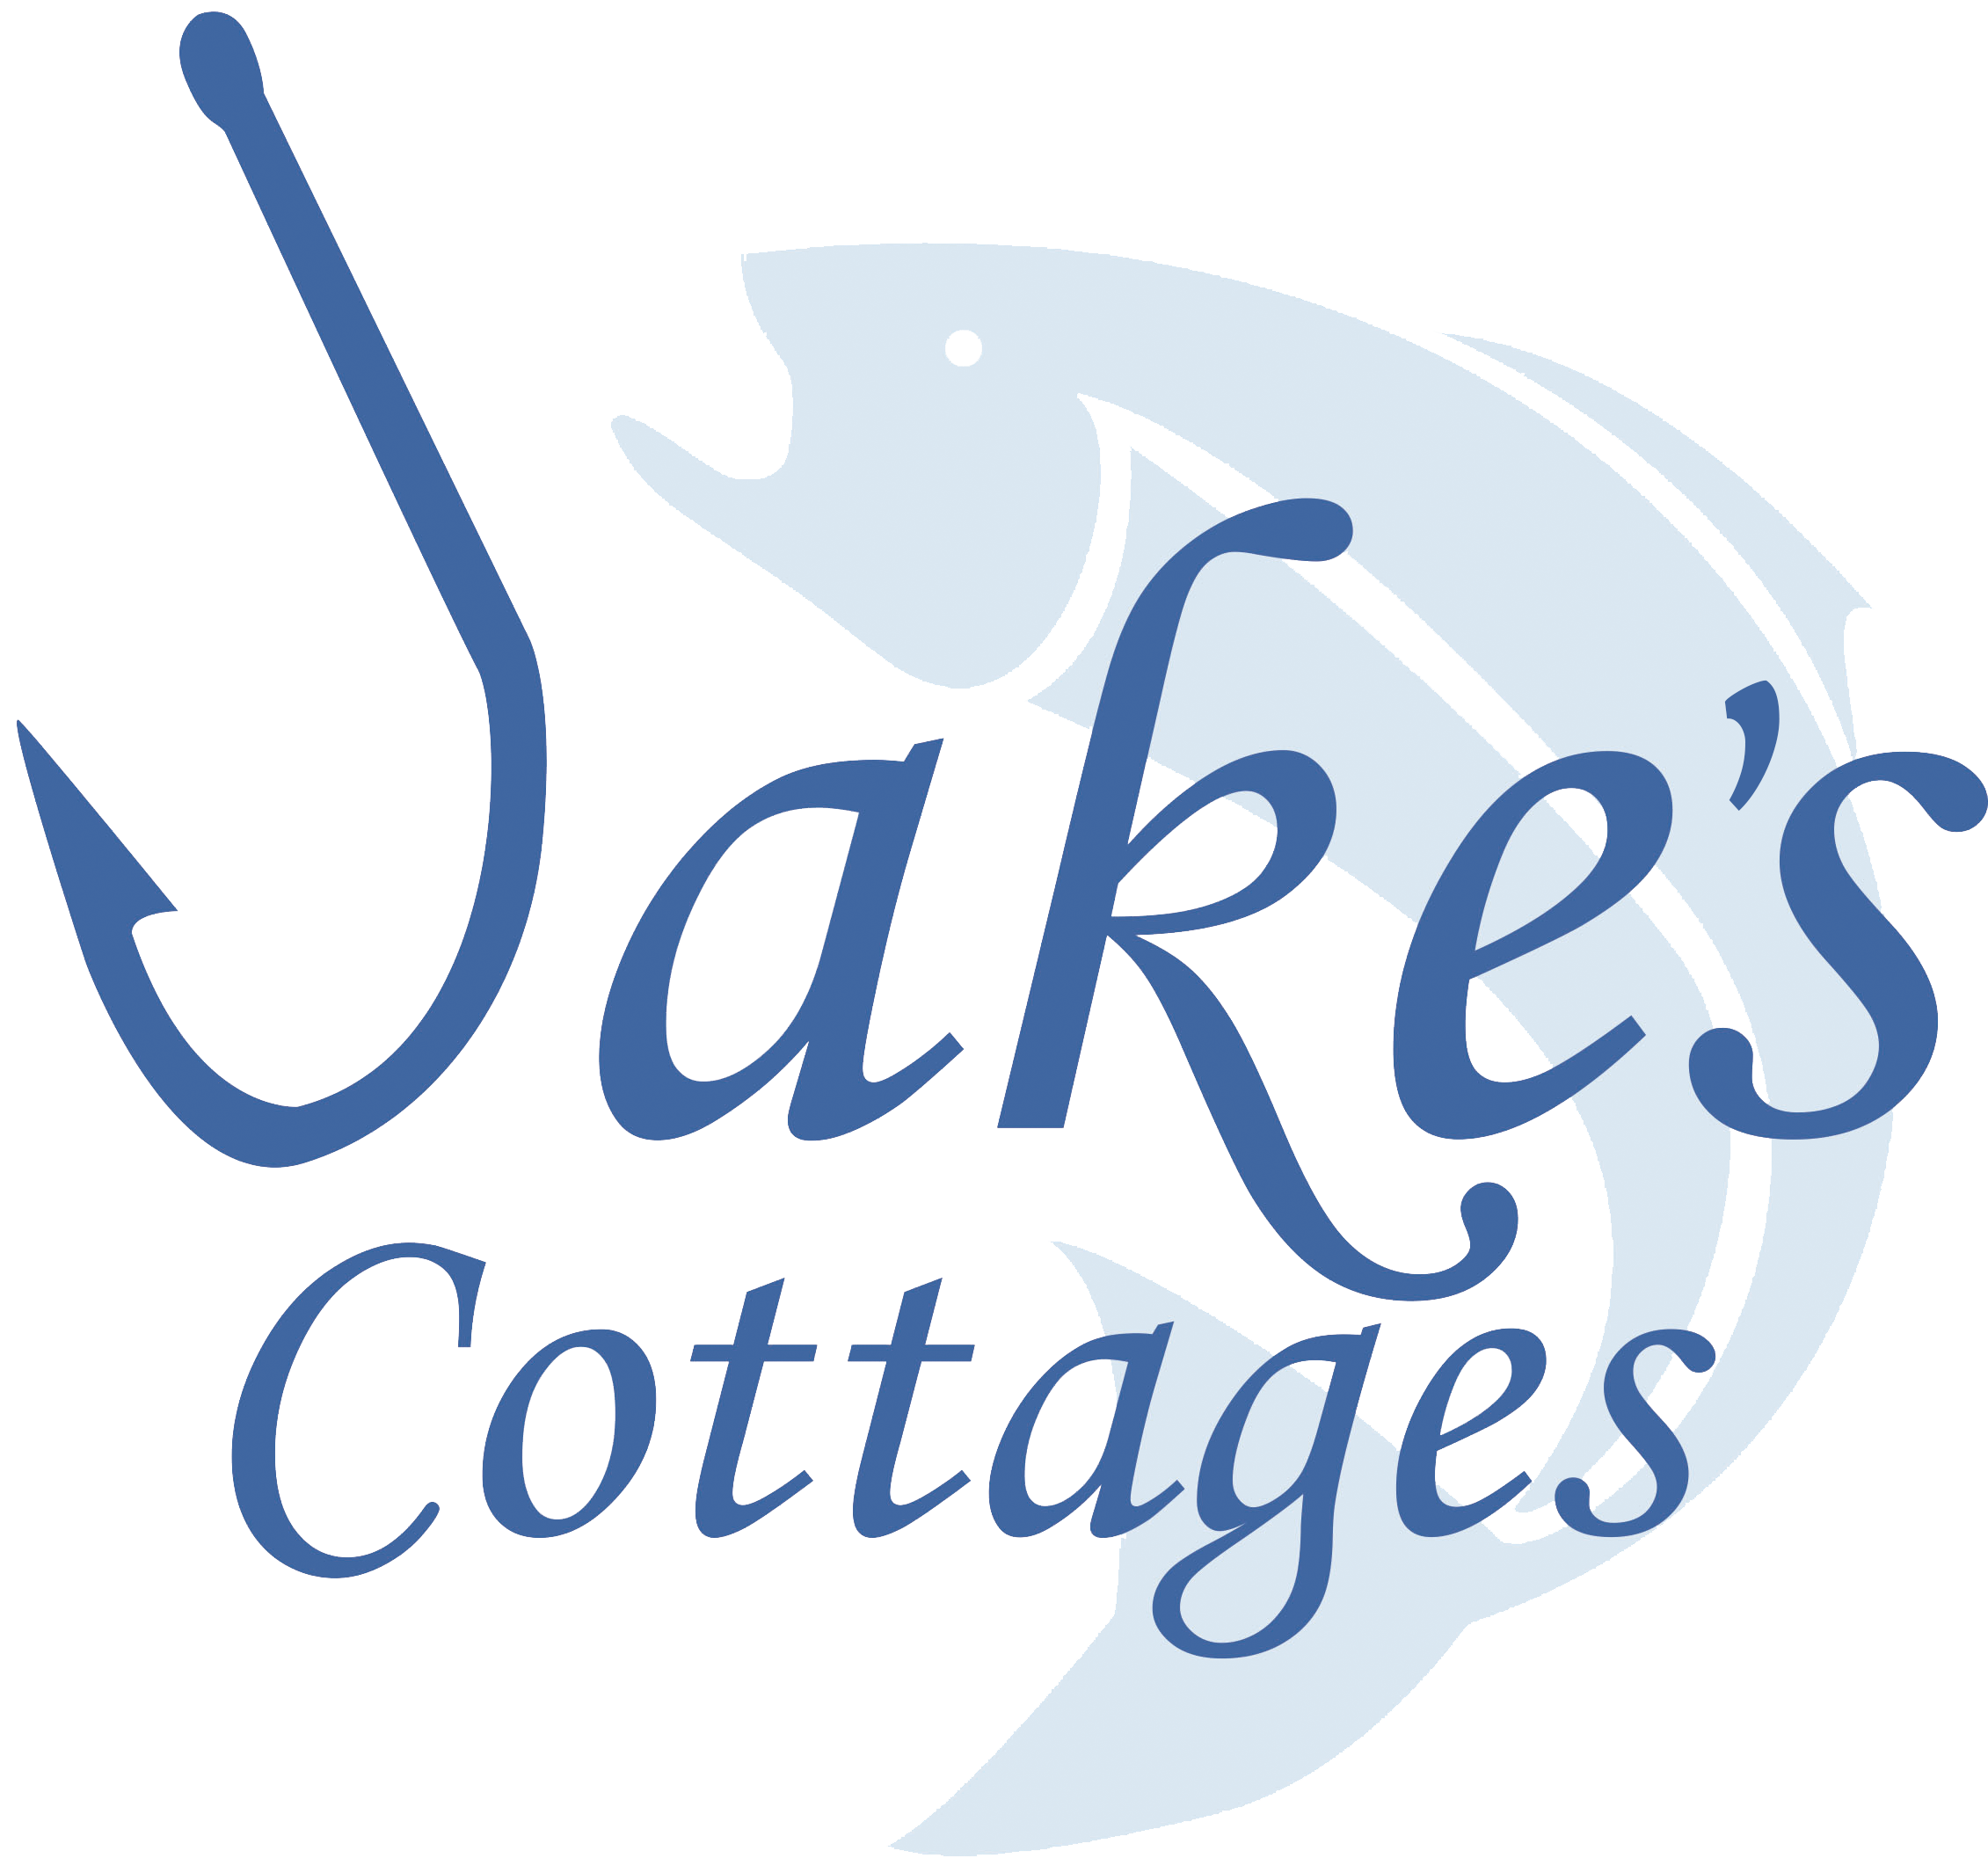 Jake's Cottages